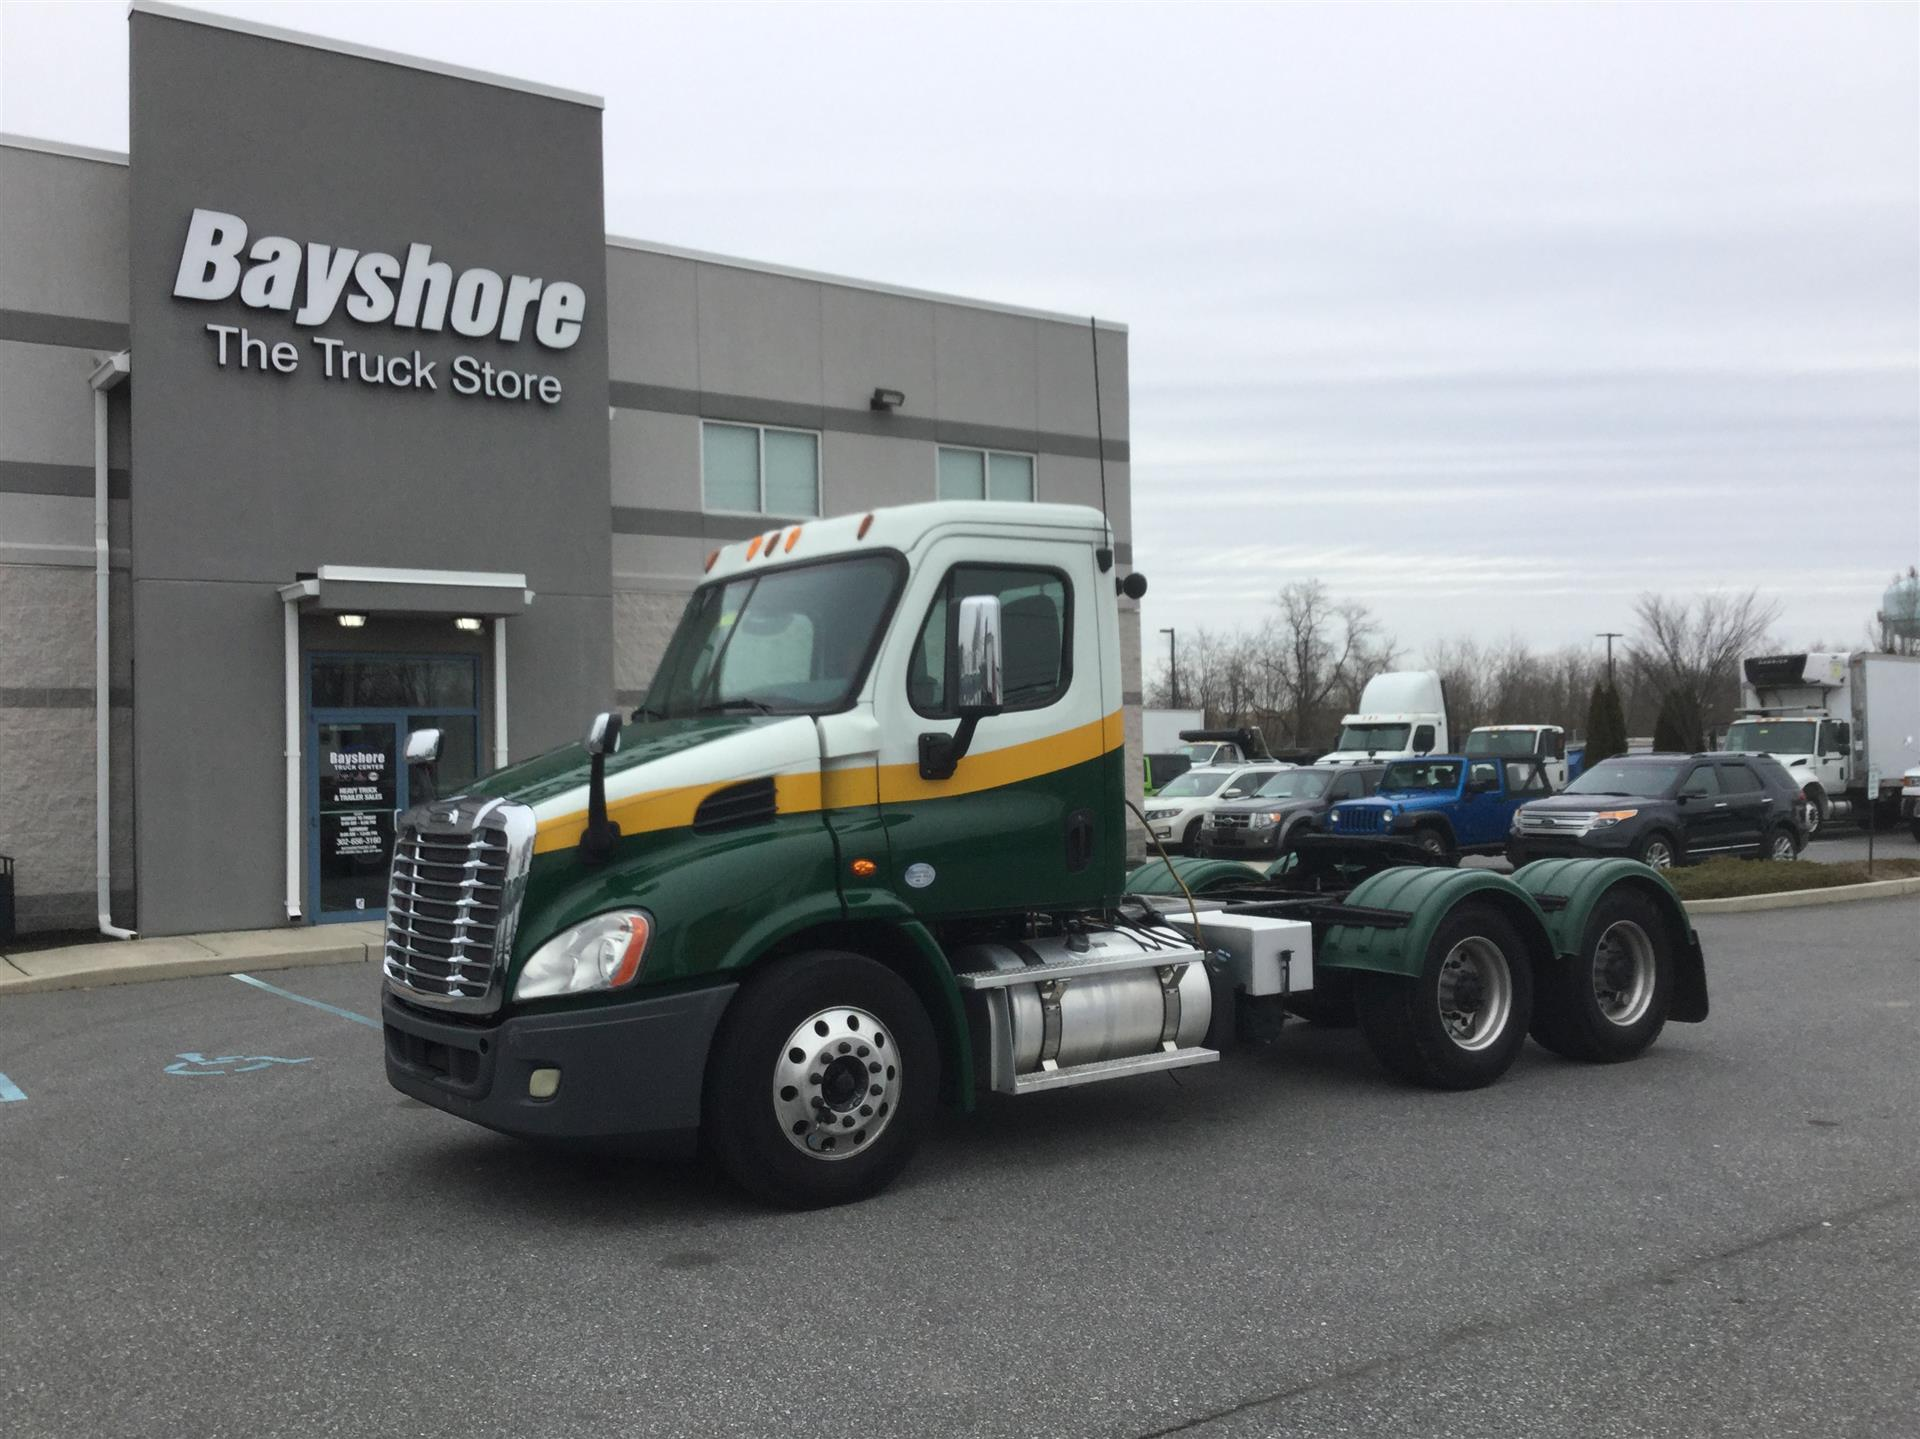 2013 FREIGHTLINER CASCADIA 113 DAYCAB TRUCK #730616